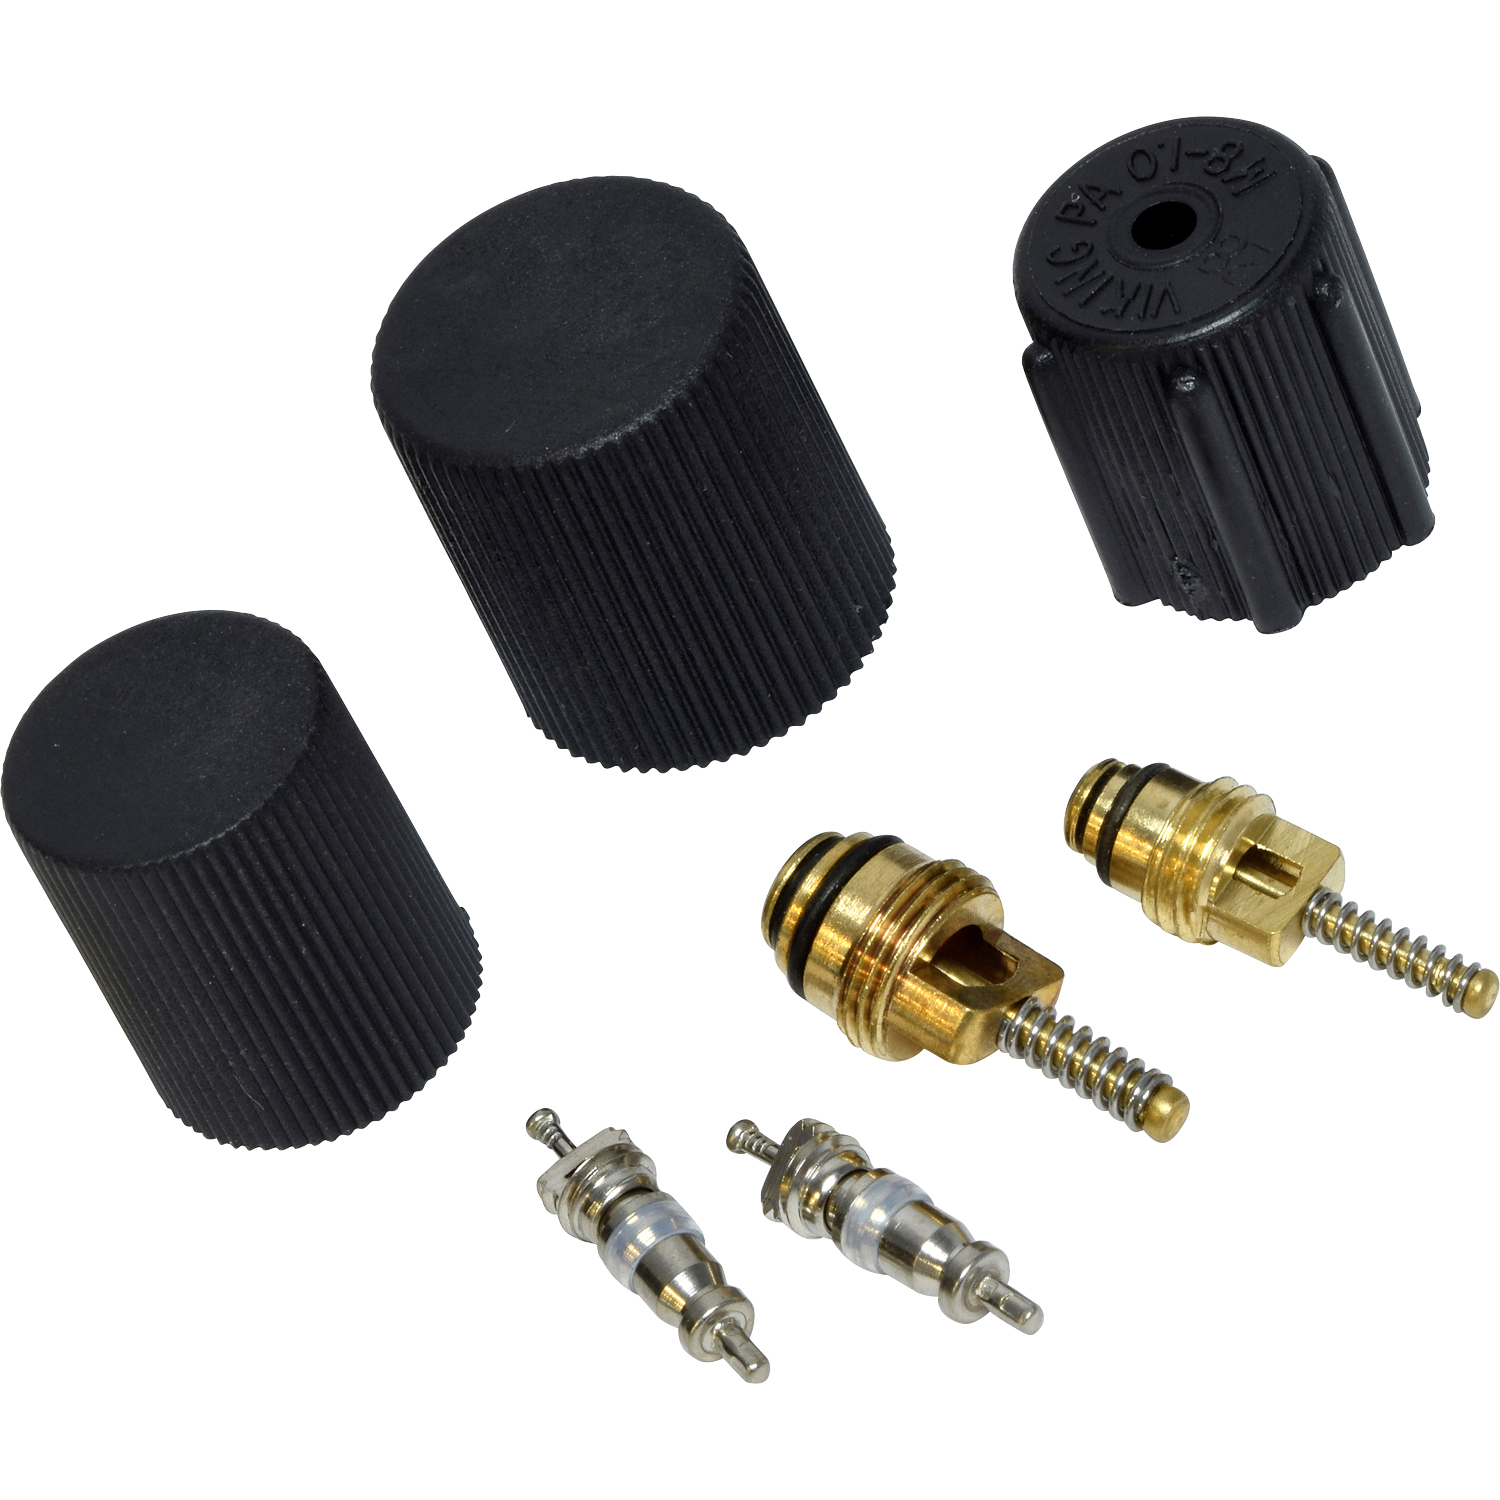 Valve and Cap Kit VC 2905C